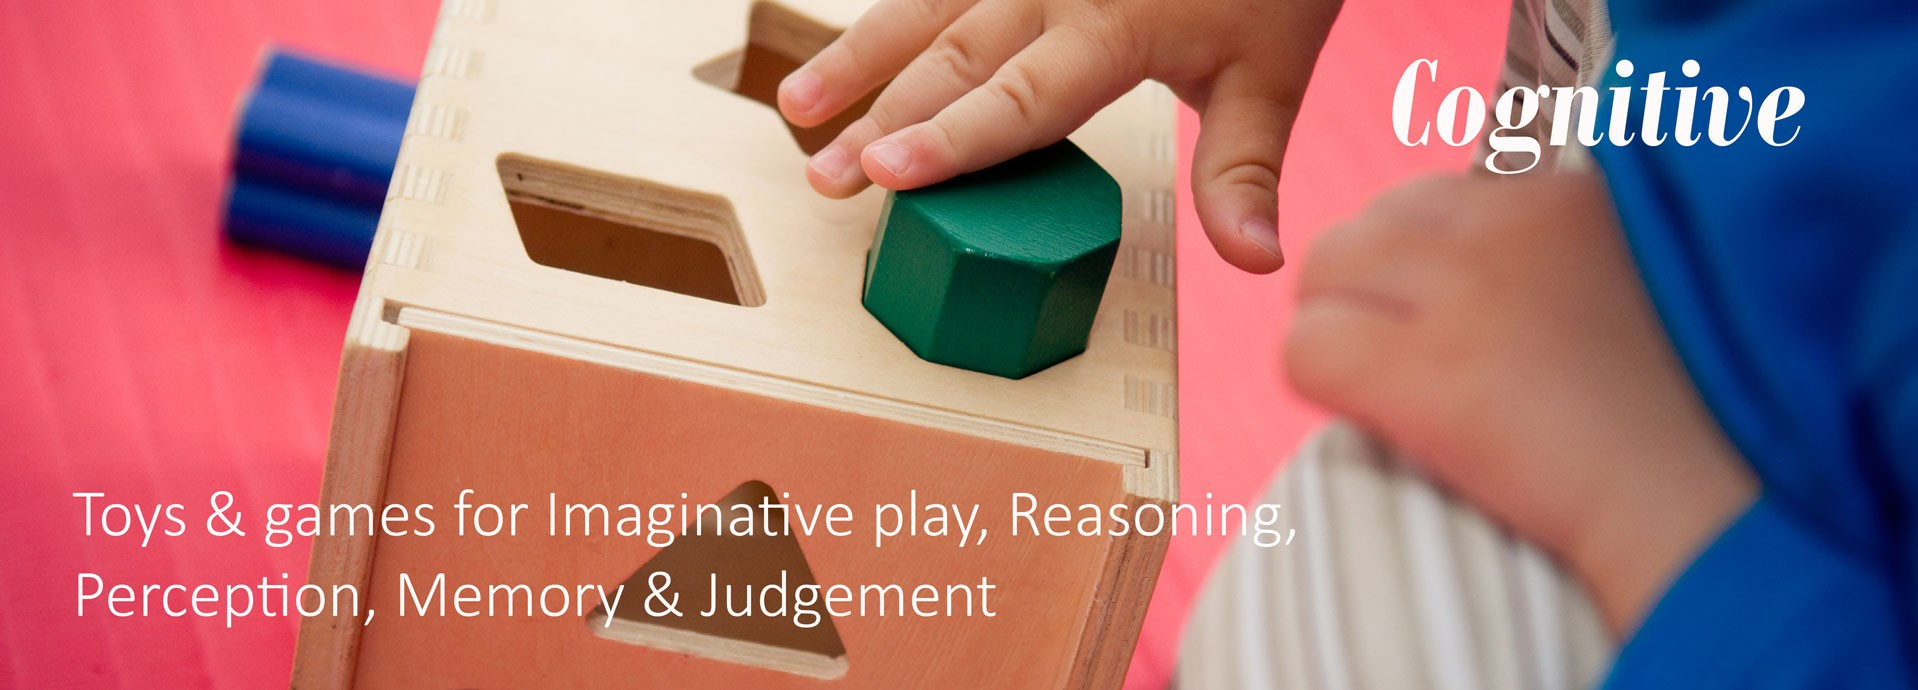 Cognitive: Toys & games for Imaginative play, Reasoning, Perception, Memory & Judgement